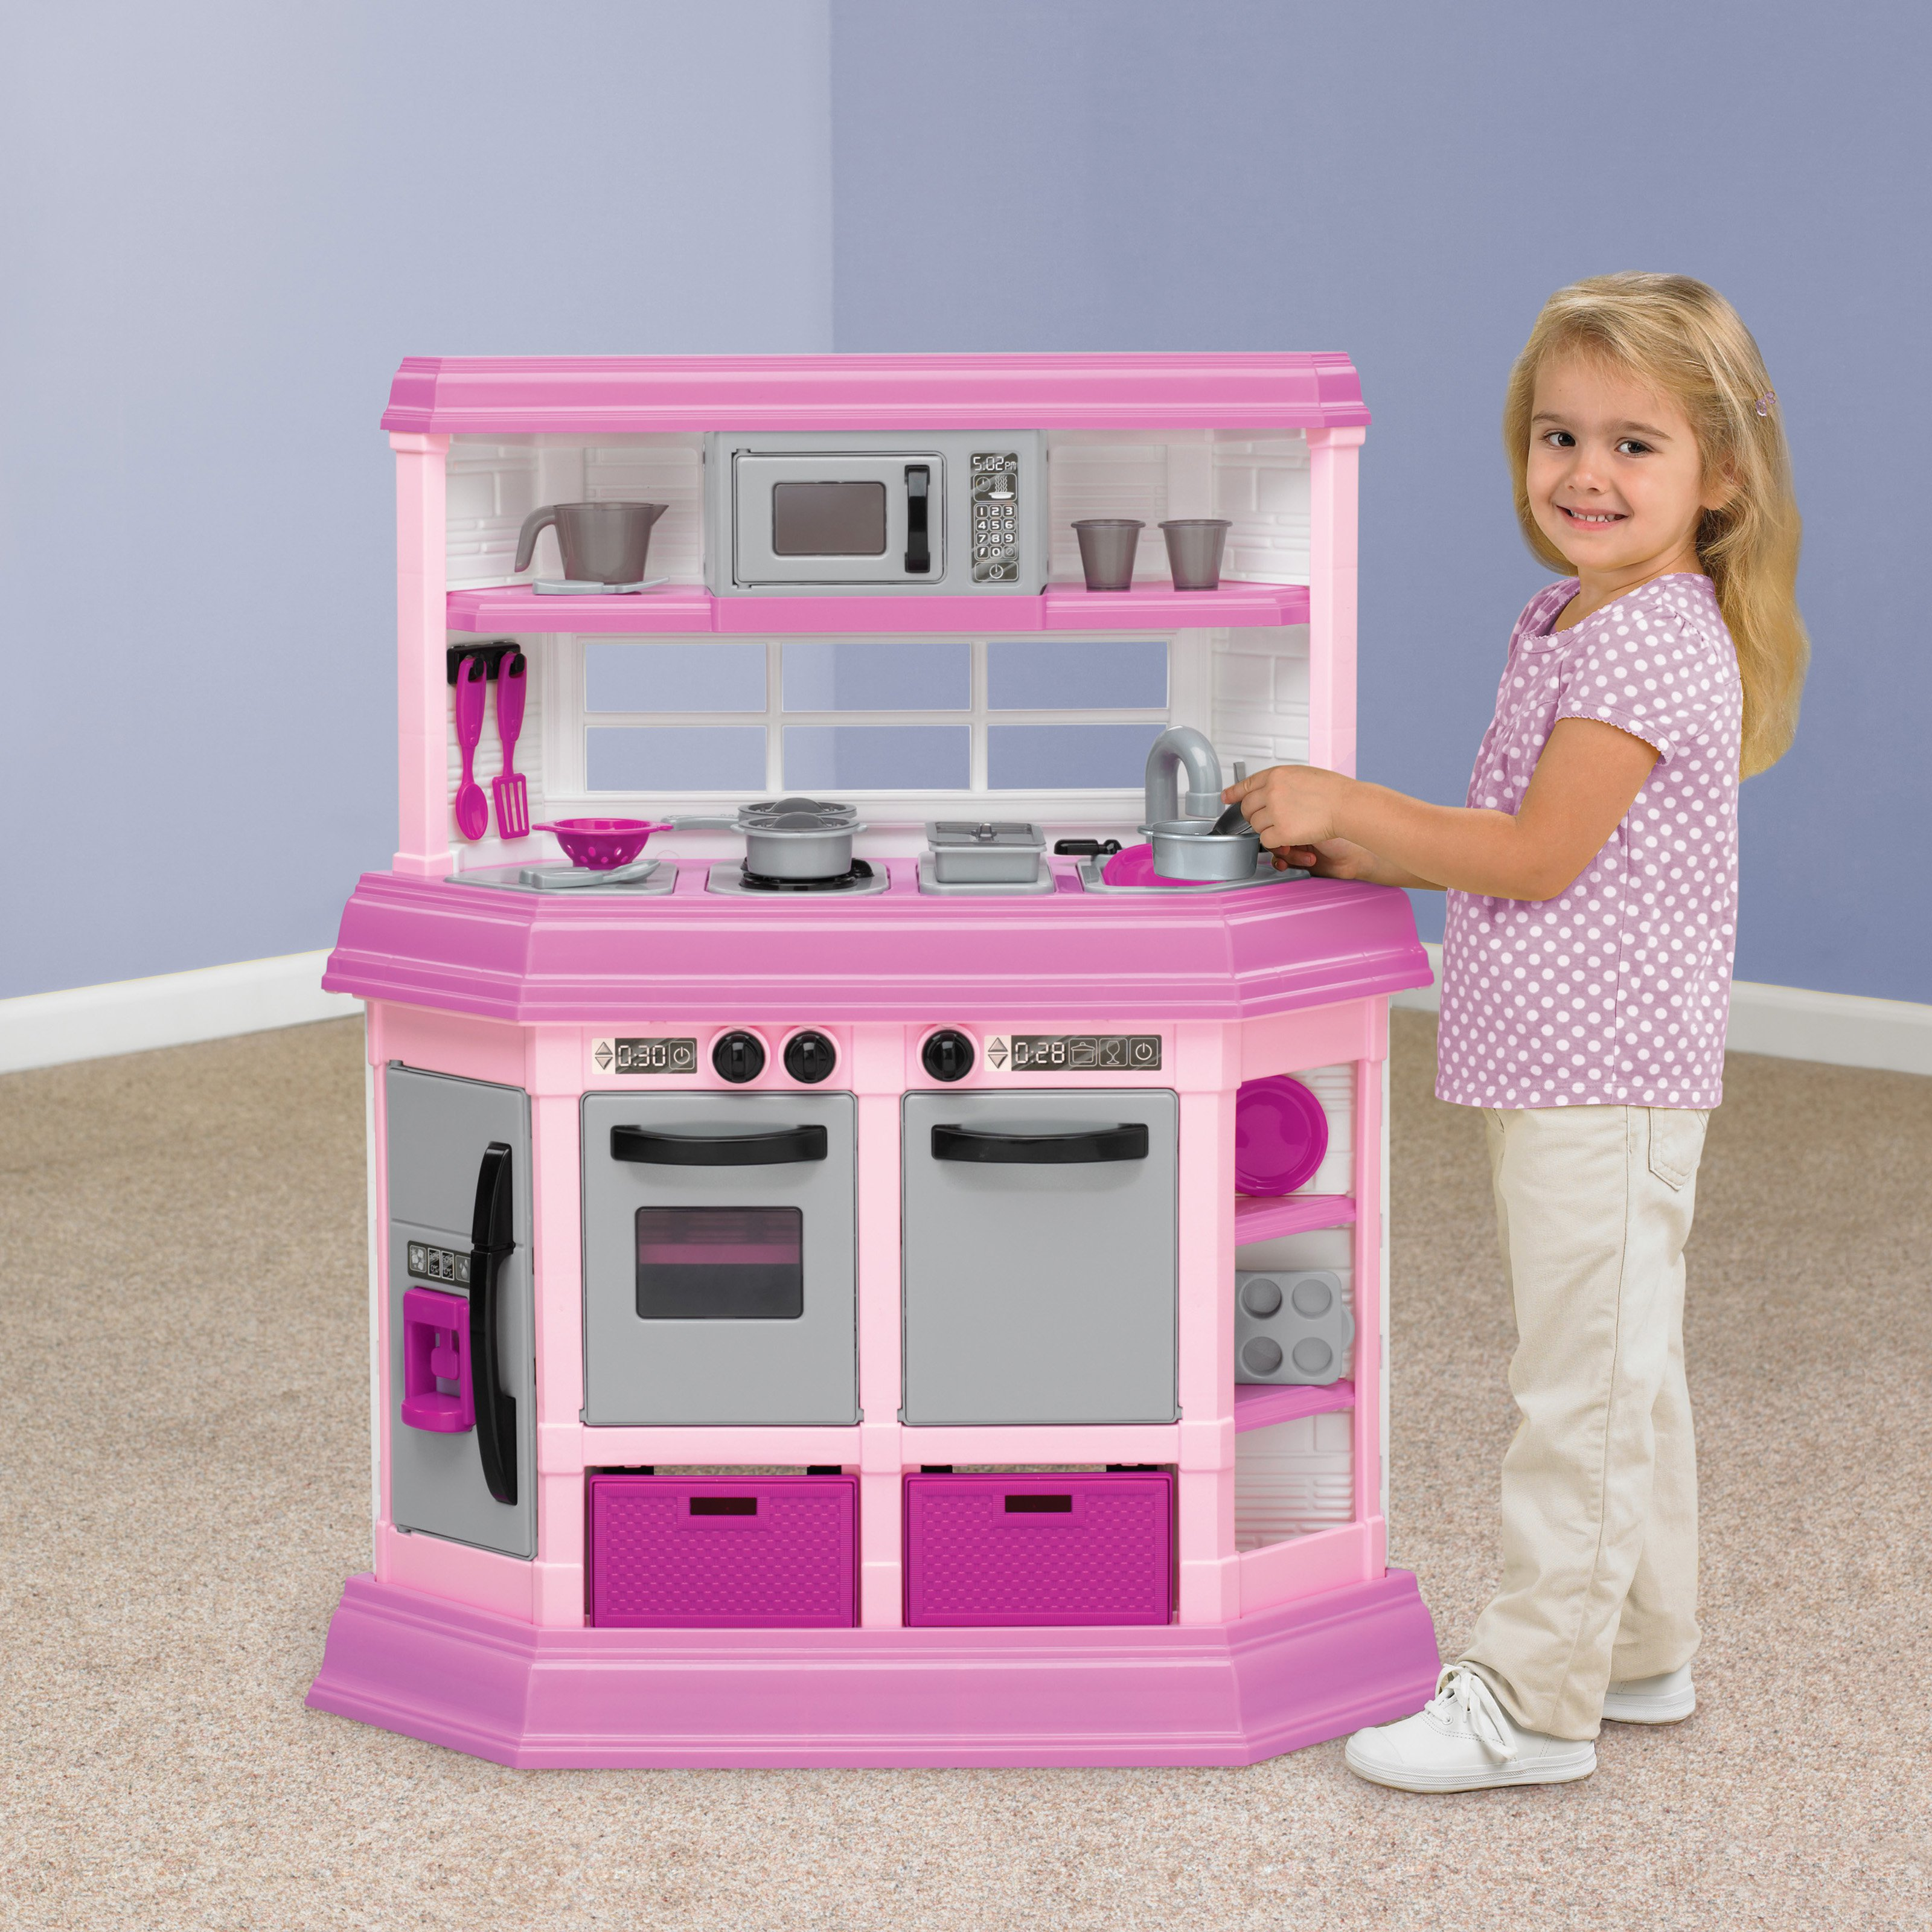 Marvelous American Plastic Toys Custom Kitchen Ft. 22 Accessories! Image 2 Of 5